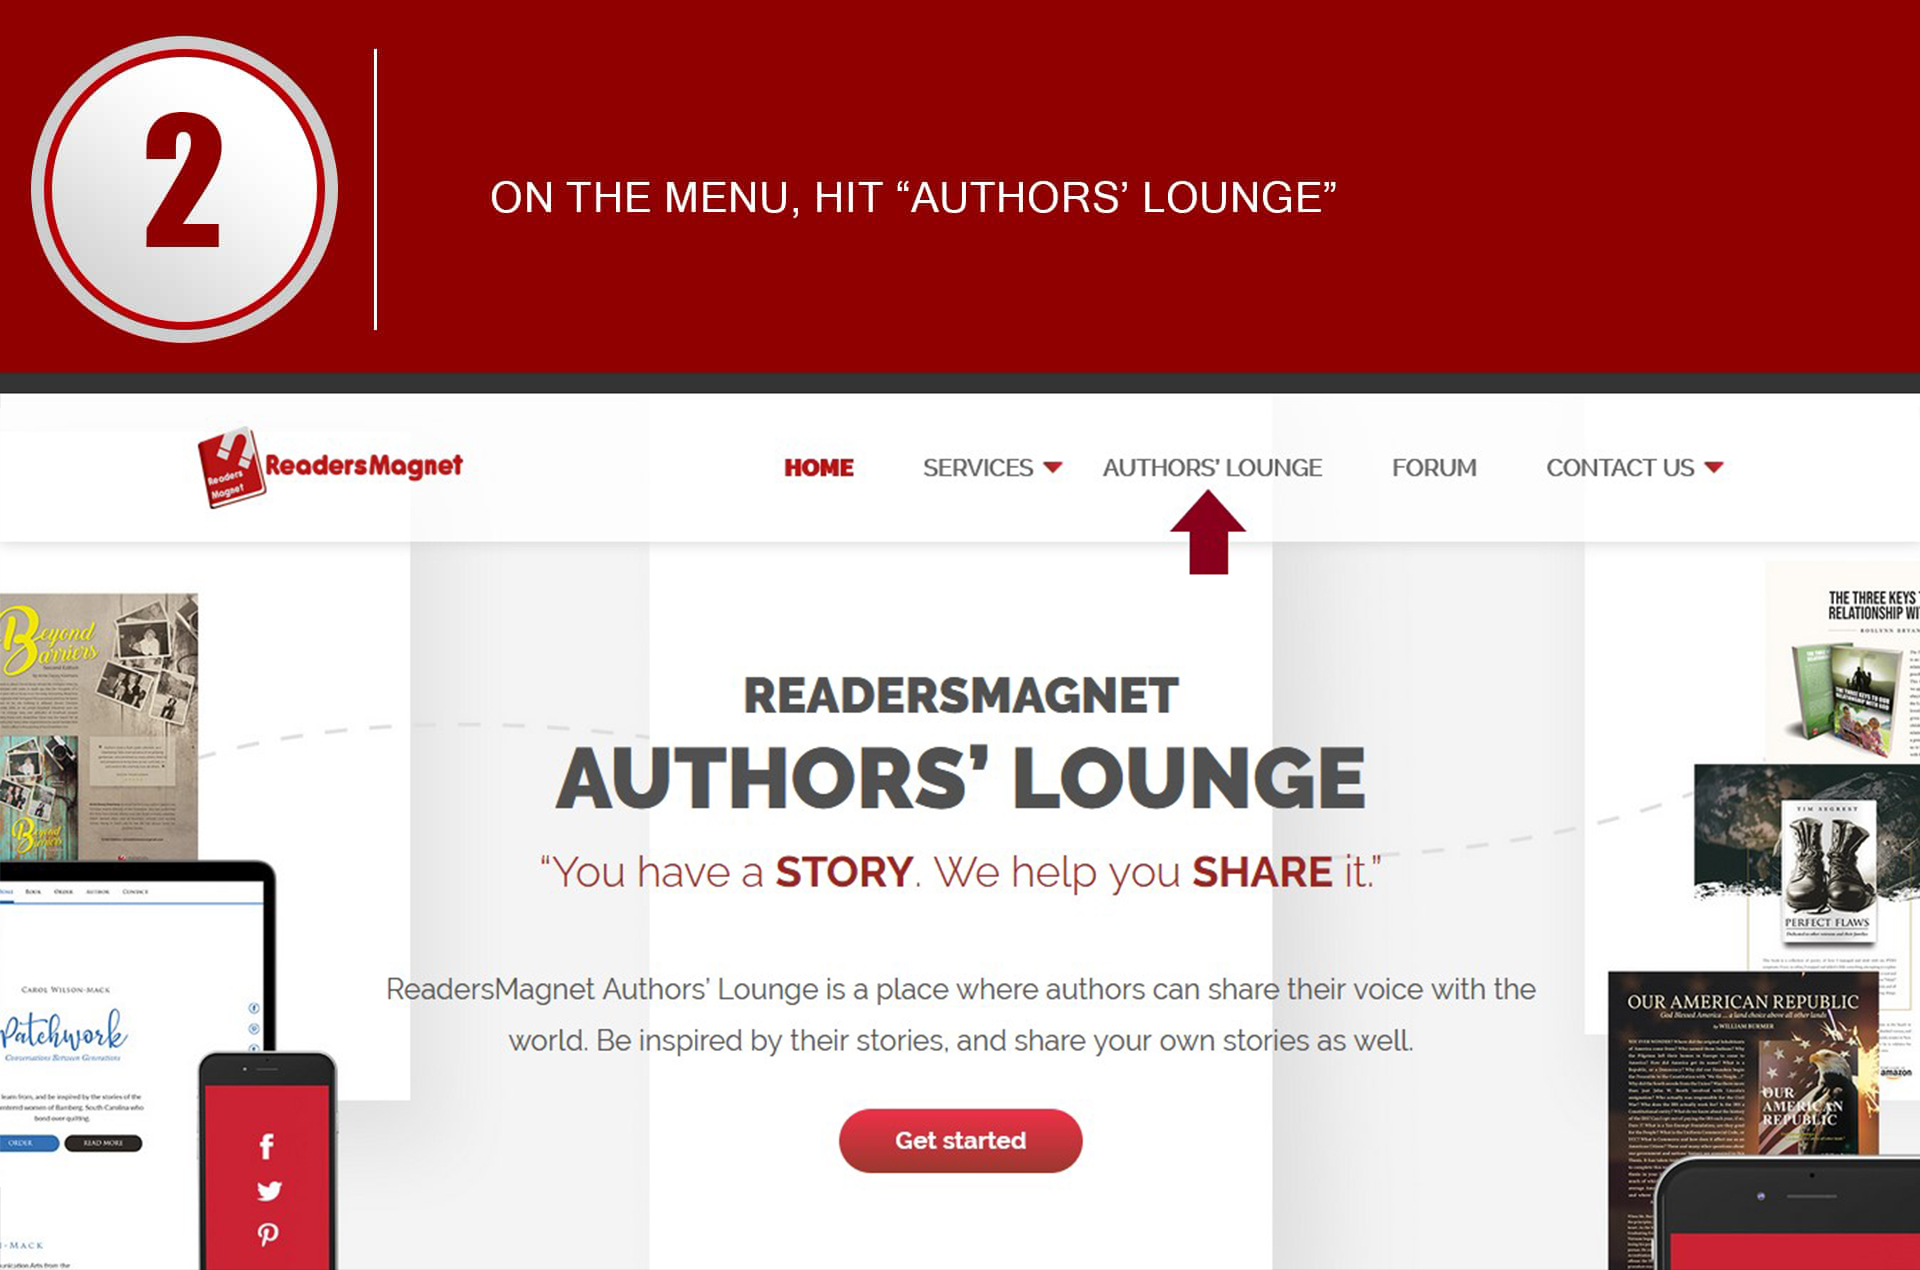 Step-2-how-to-submit-an-article-with-readersmagnet.club